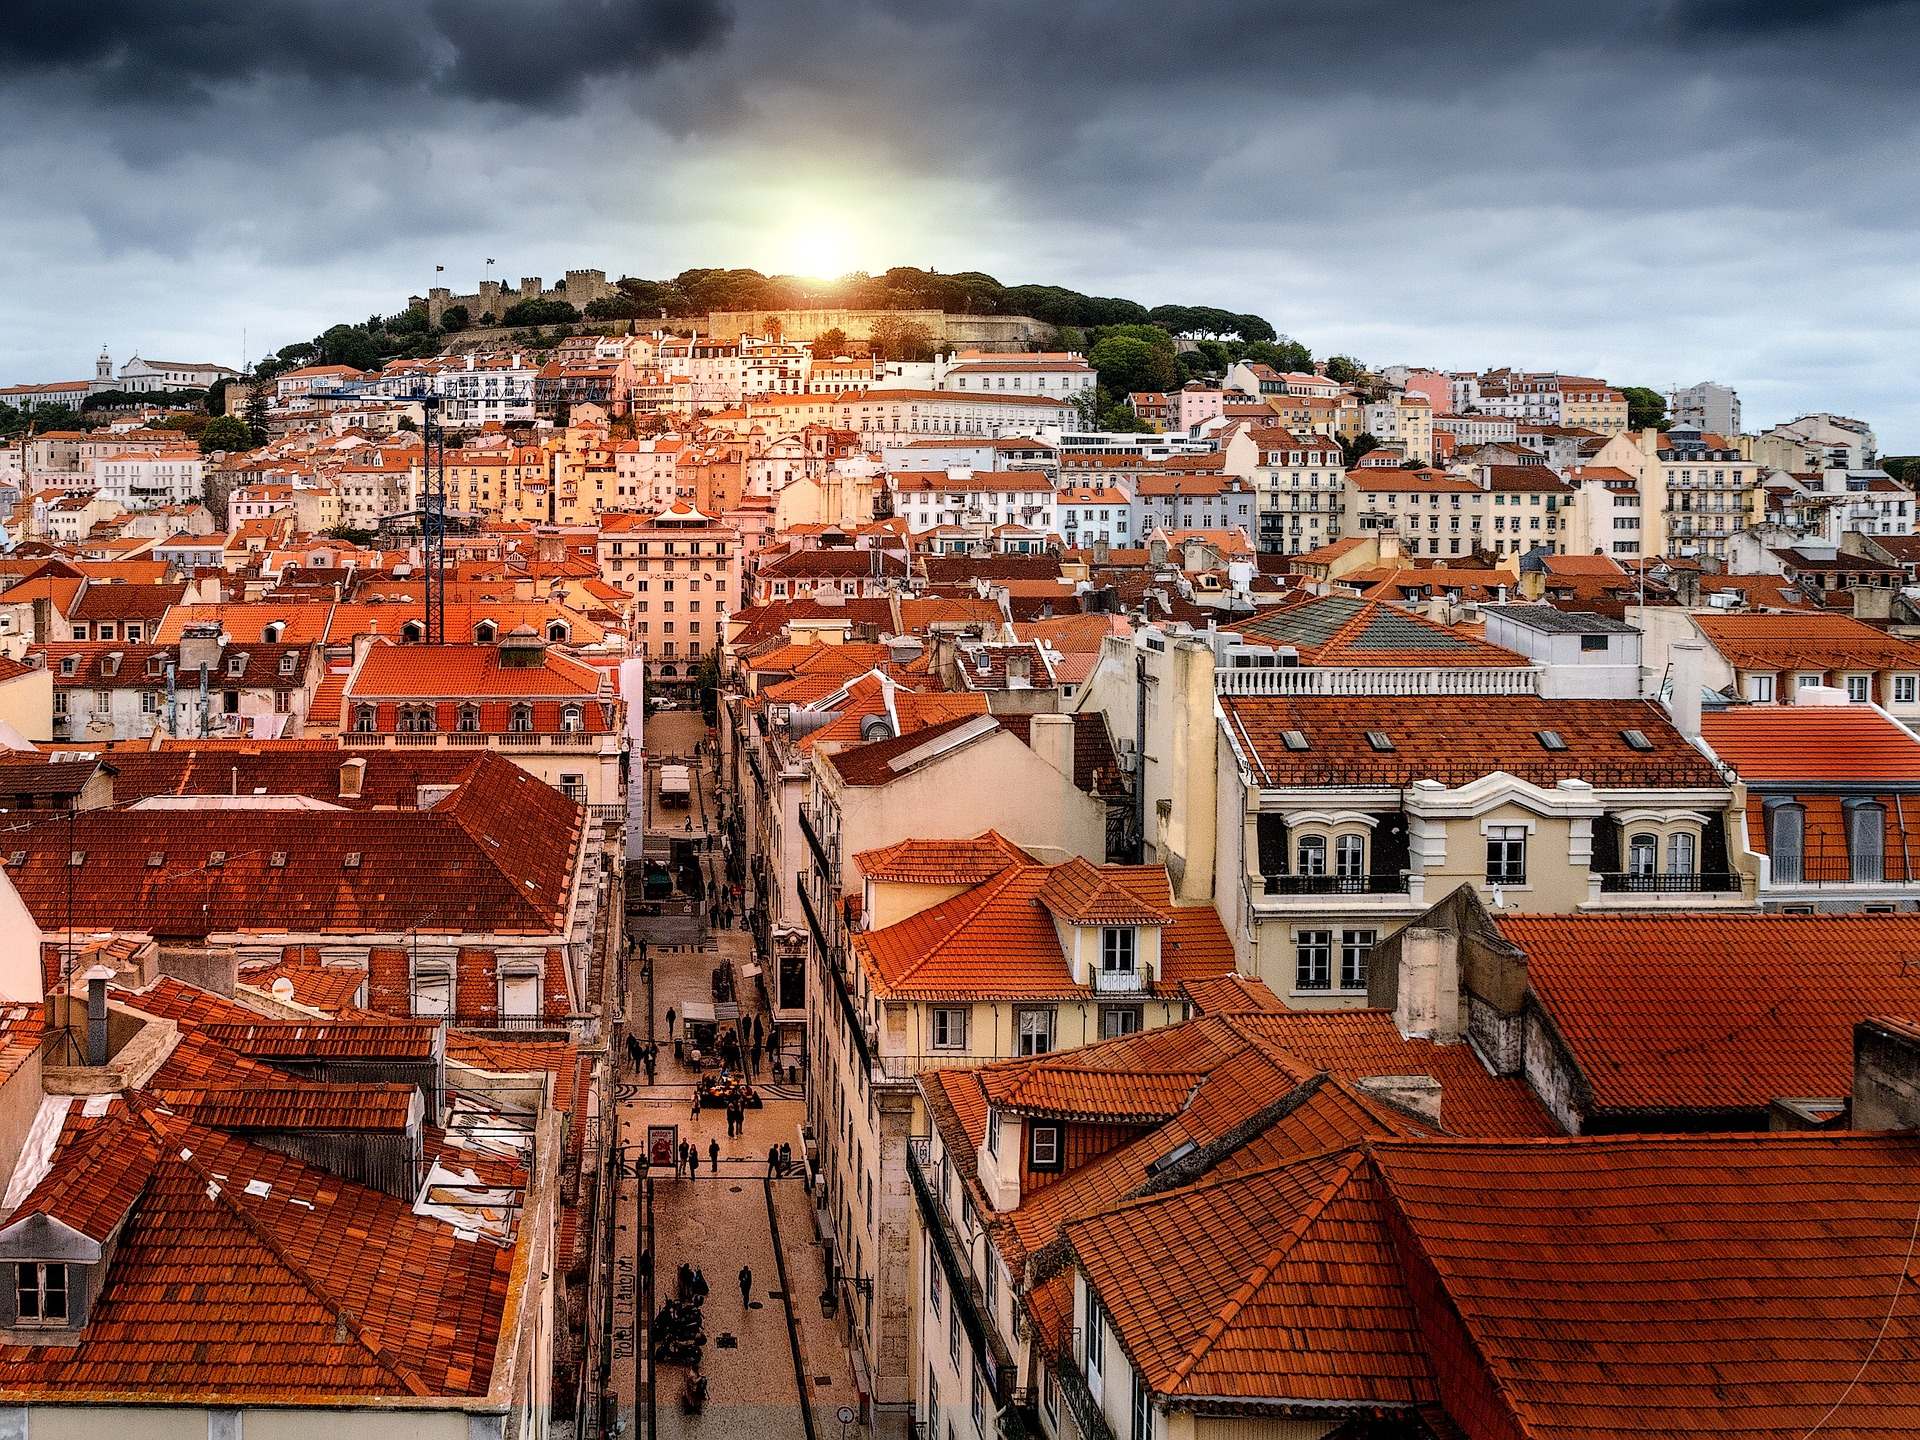 Lisbon's Alfama district is its historic beating heart, a cobbled, lovely maze that slopes up the hill to the Se Cathedral and Lisbon's central castle, the Castelo de Sao Jorge (photo by Cristina Macia)